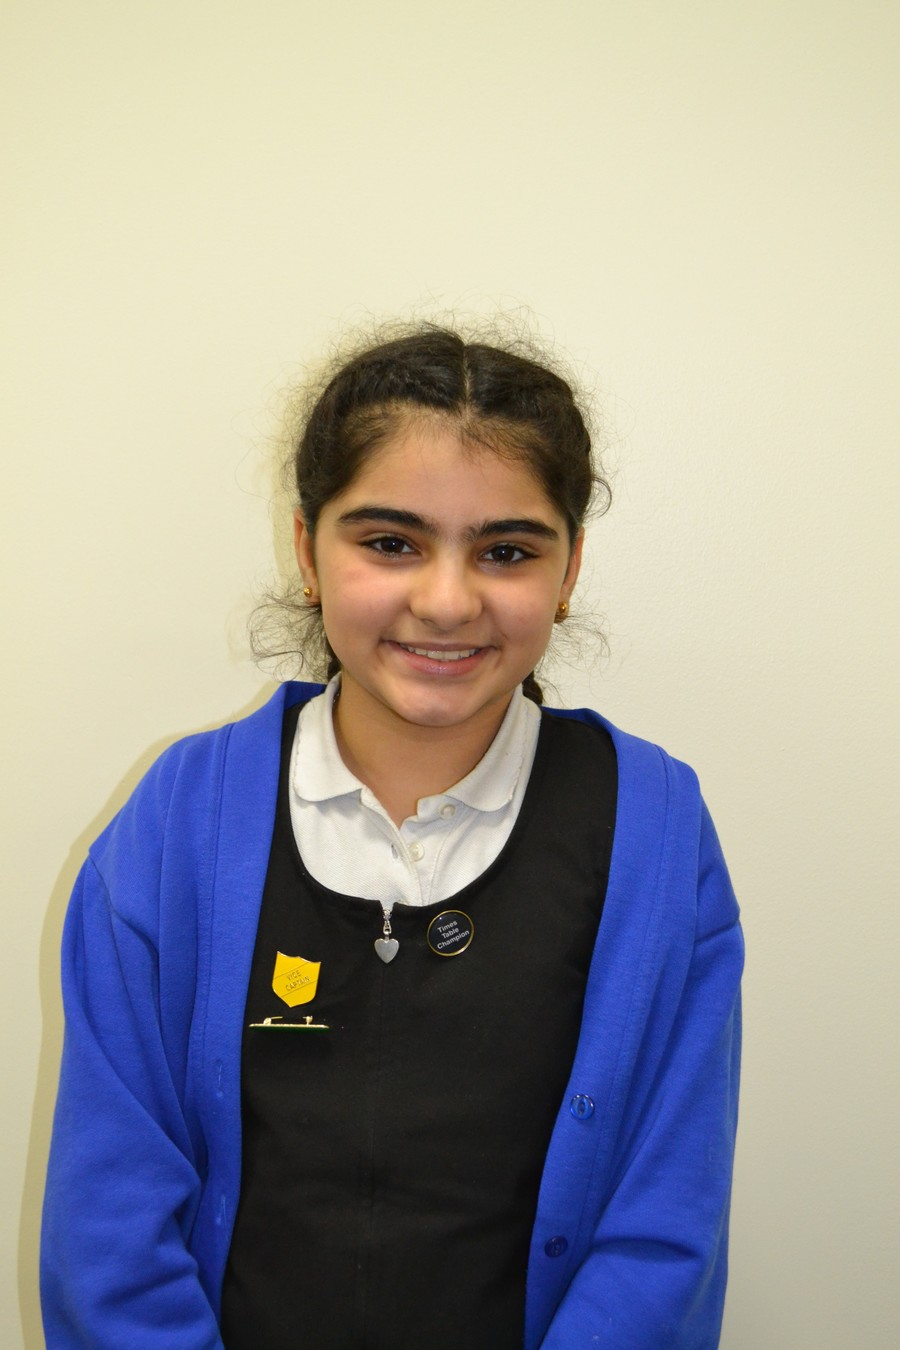 Well done Heba!